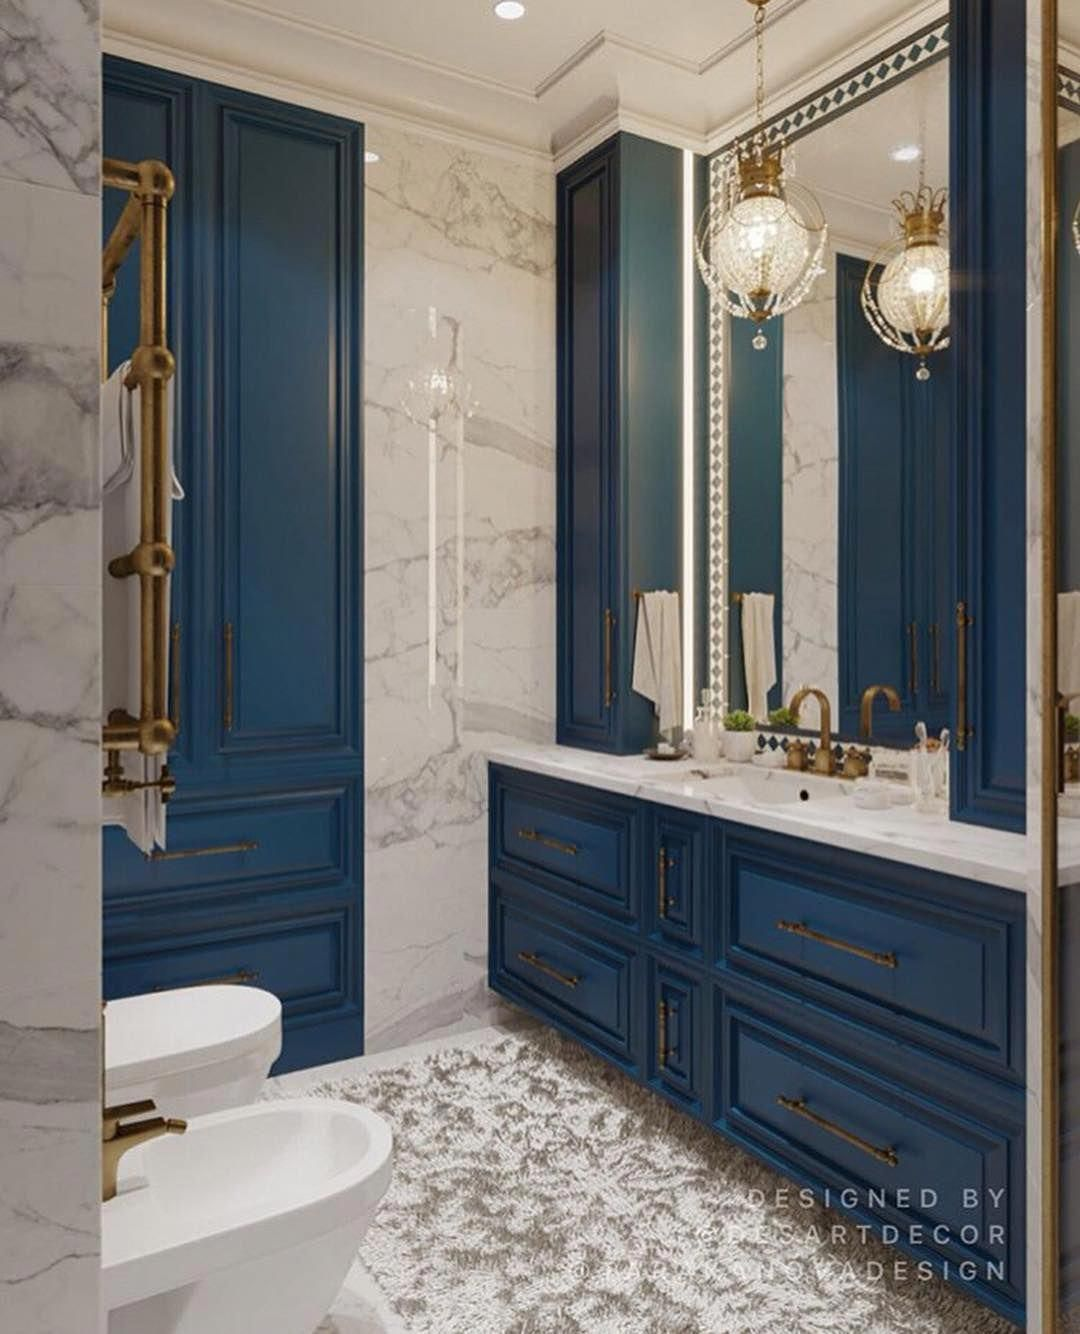 French Country Decor Colors Frenchcountrydecor Bathroom Interior Design Bathroom Interior Bathroom Design Luxury